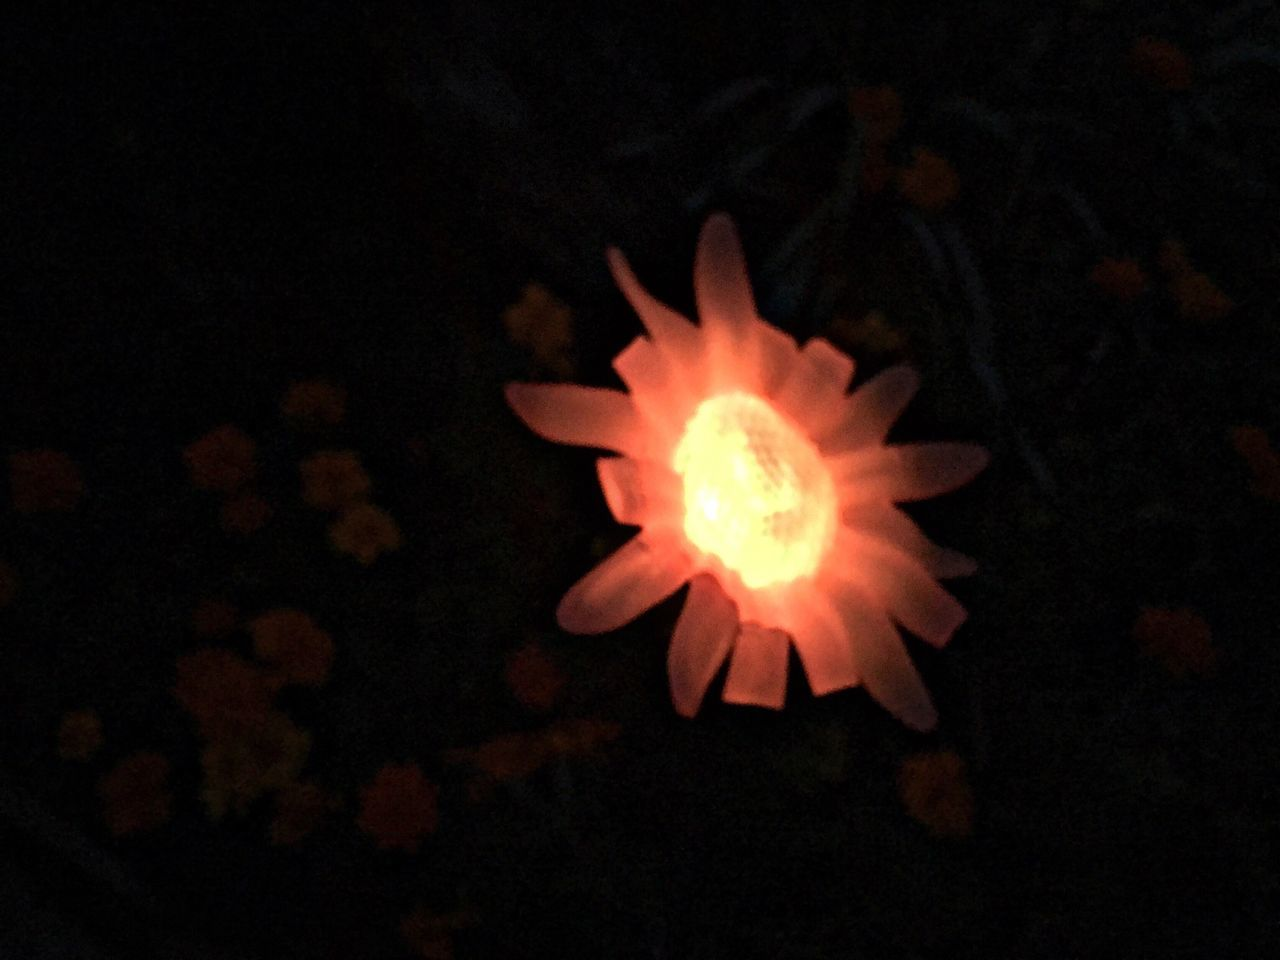 Solar Light Flower Petal Flower Head Close-up Freshness Fragility Single Flower Red Nature Dark Growth Blooming Beauty In Nature Fine Art Black Background Night Lights Springtime Night Blossom Overnight Success Glowing Glow Glowinthedark Garden